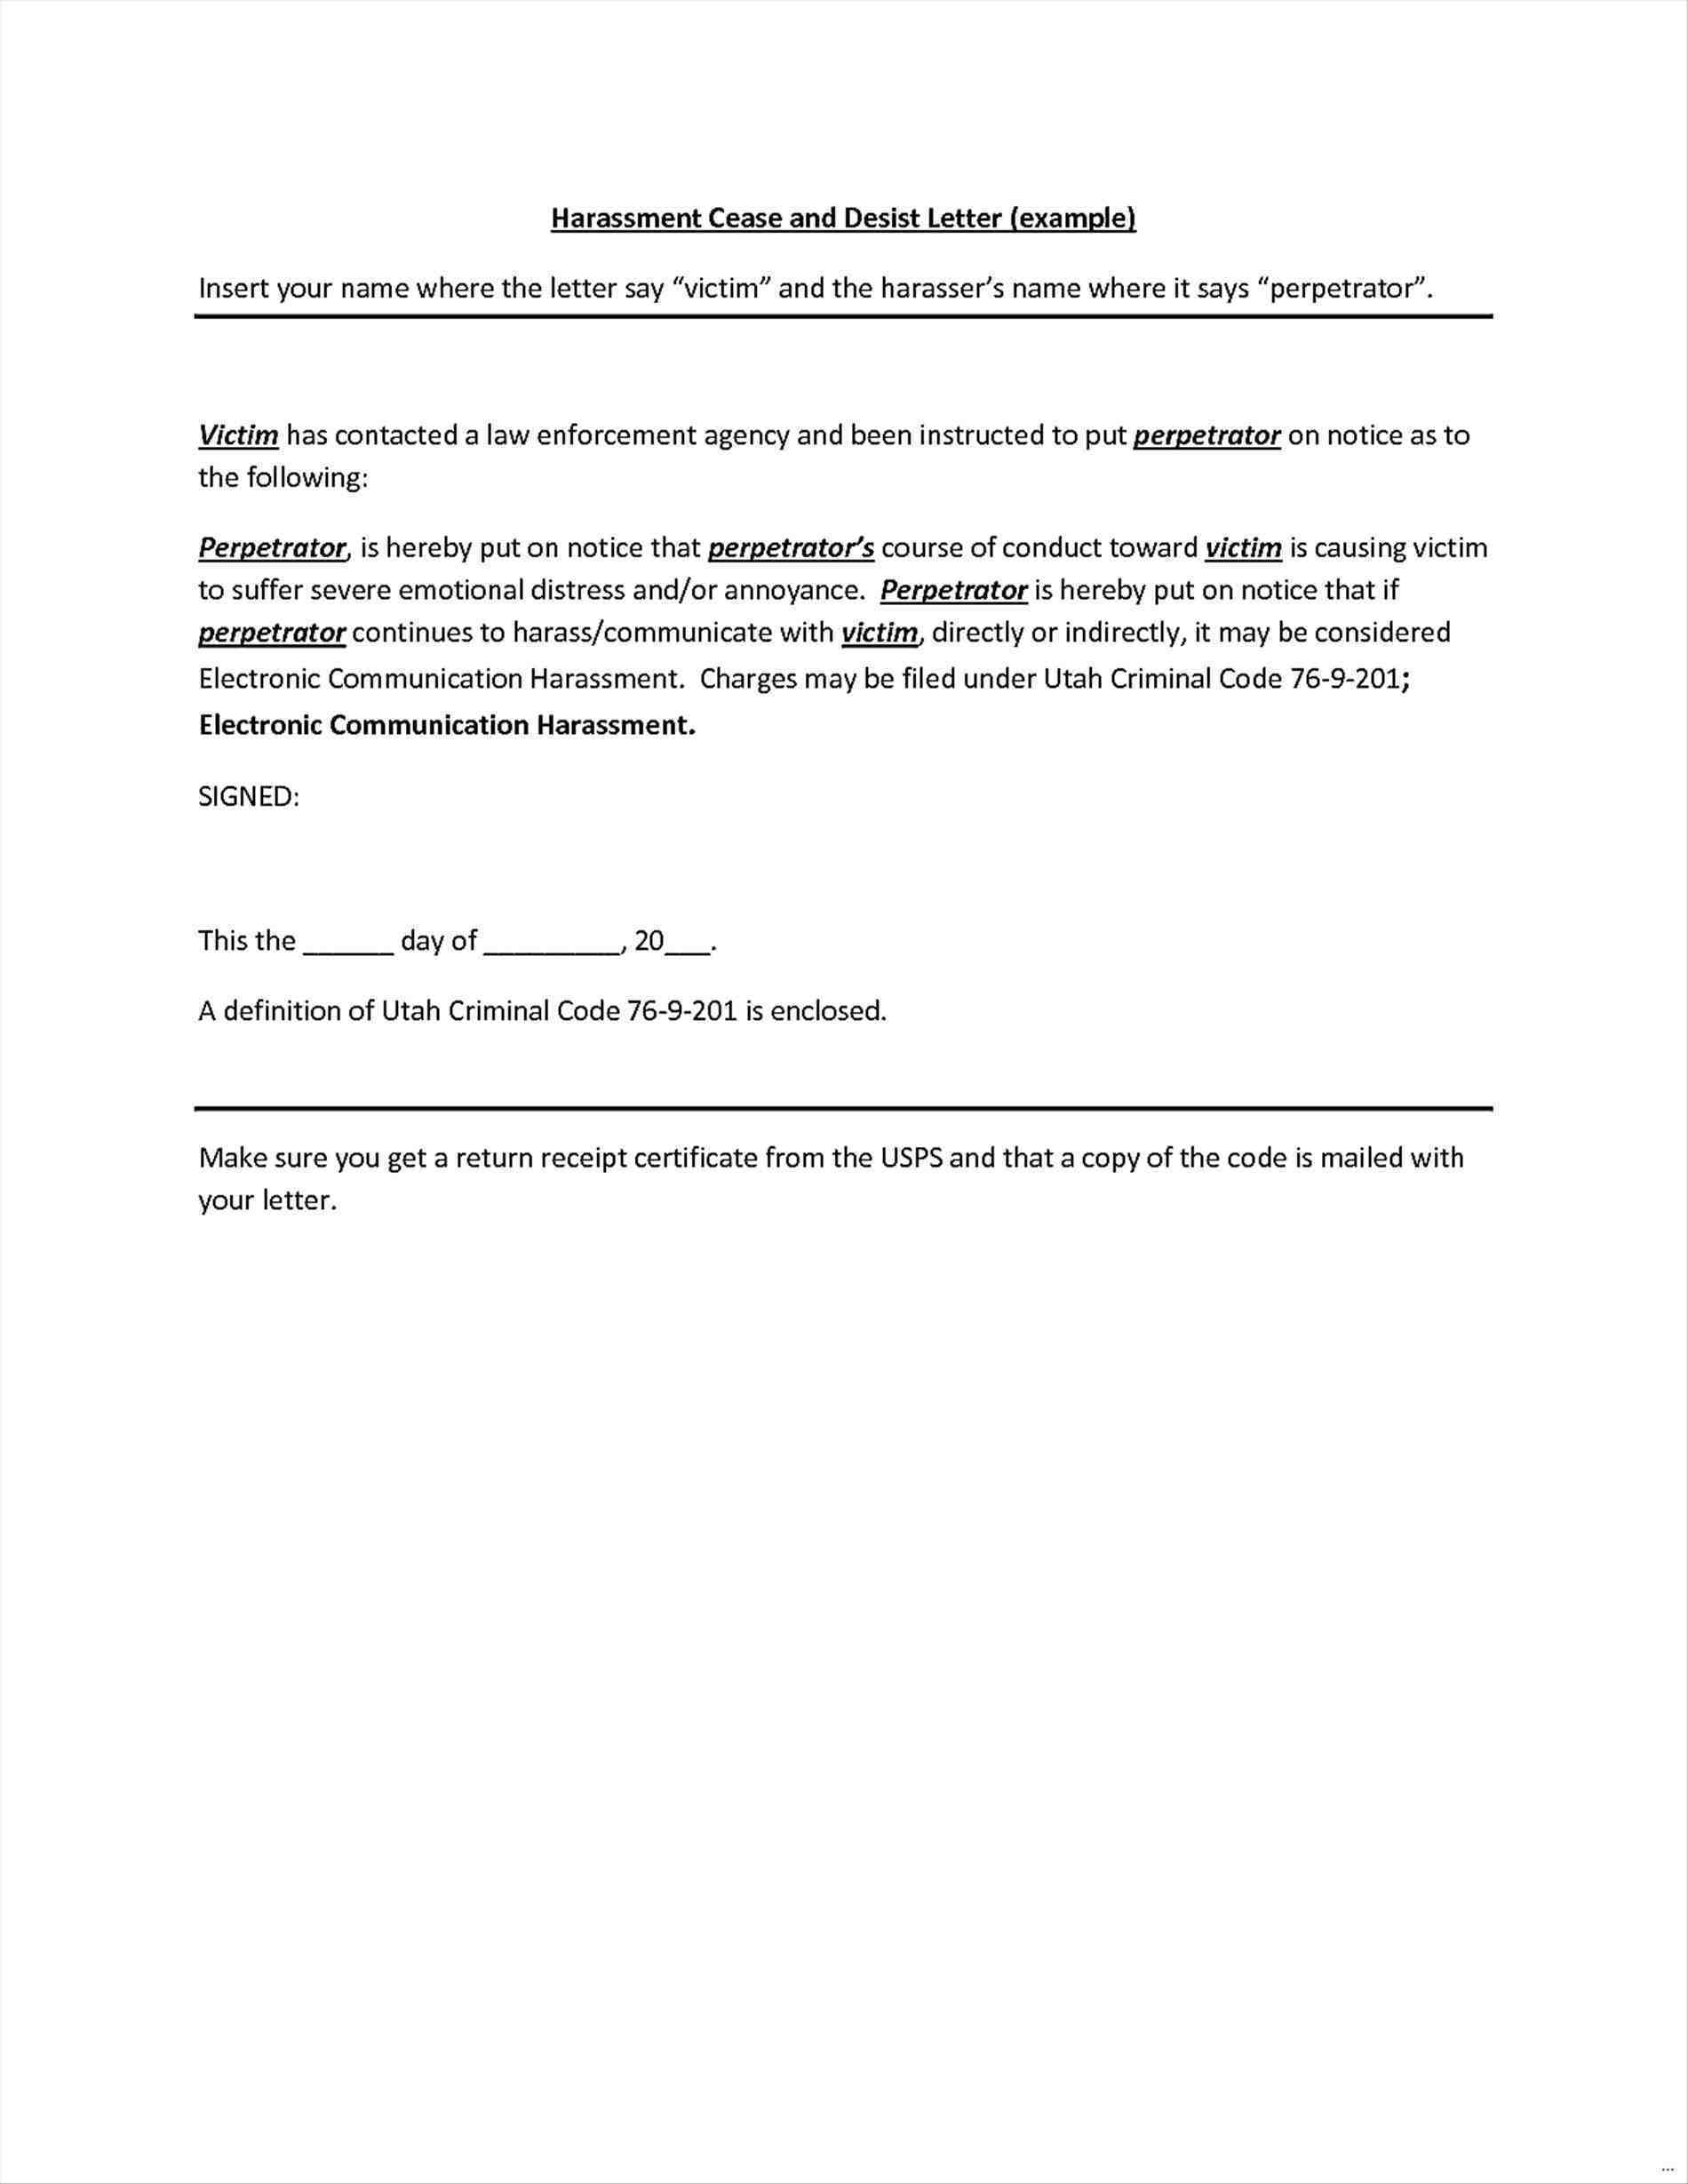 Free Cease and Desist Letter Template for Harassment - What is A Cease and Desist Letter Awesome Cease and Desist Template